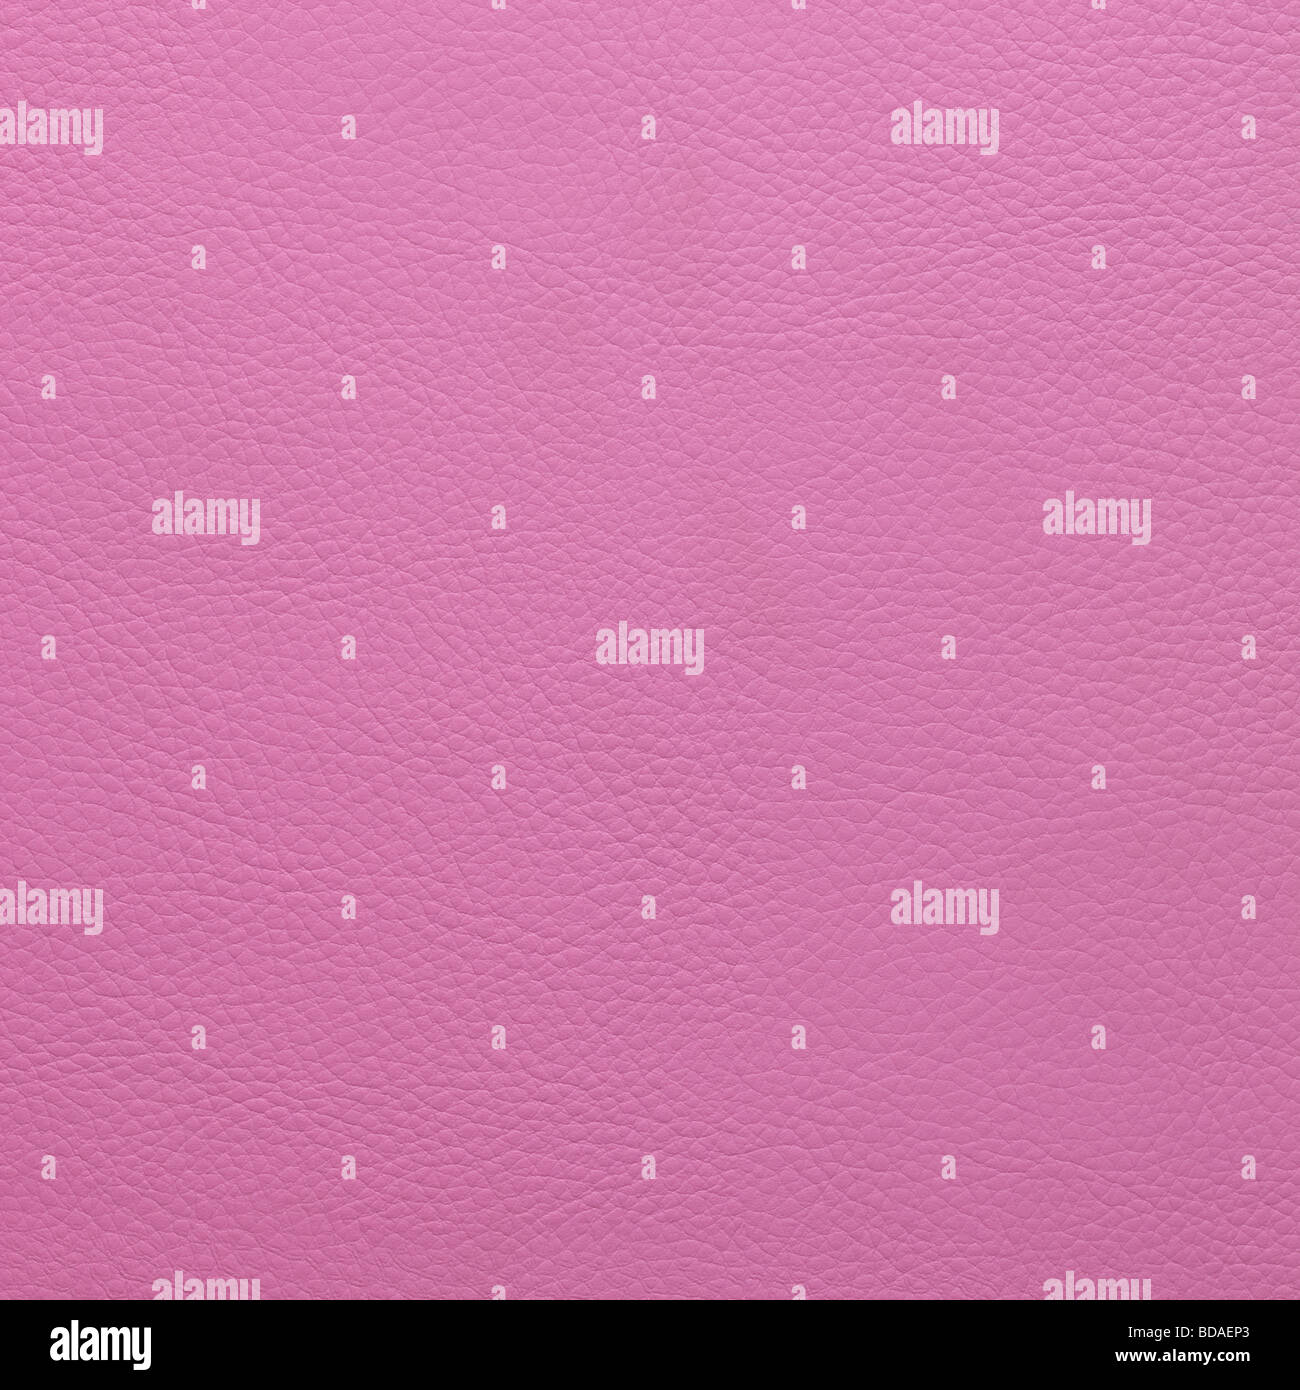 PINK LEATHER BACKGROUND - Stock Image